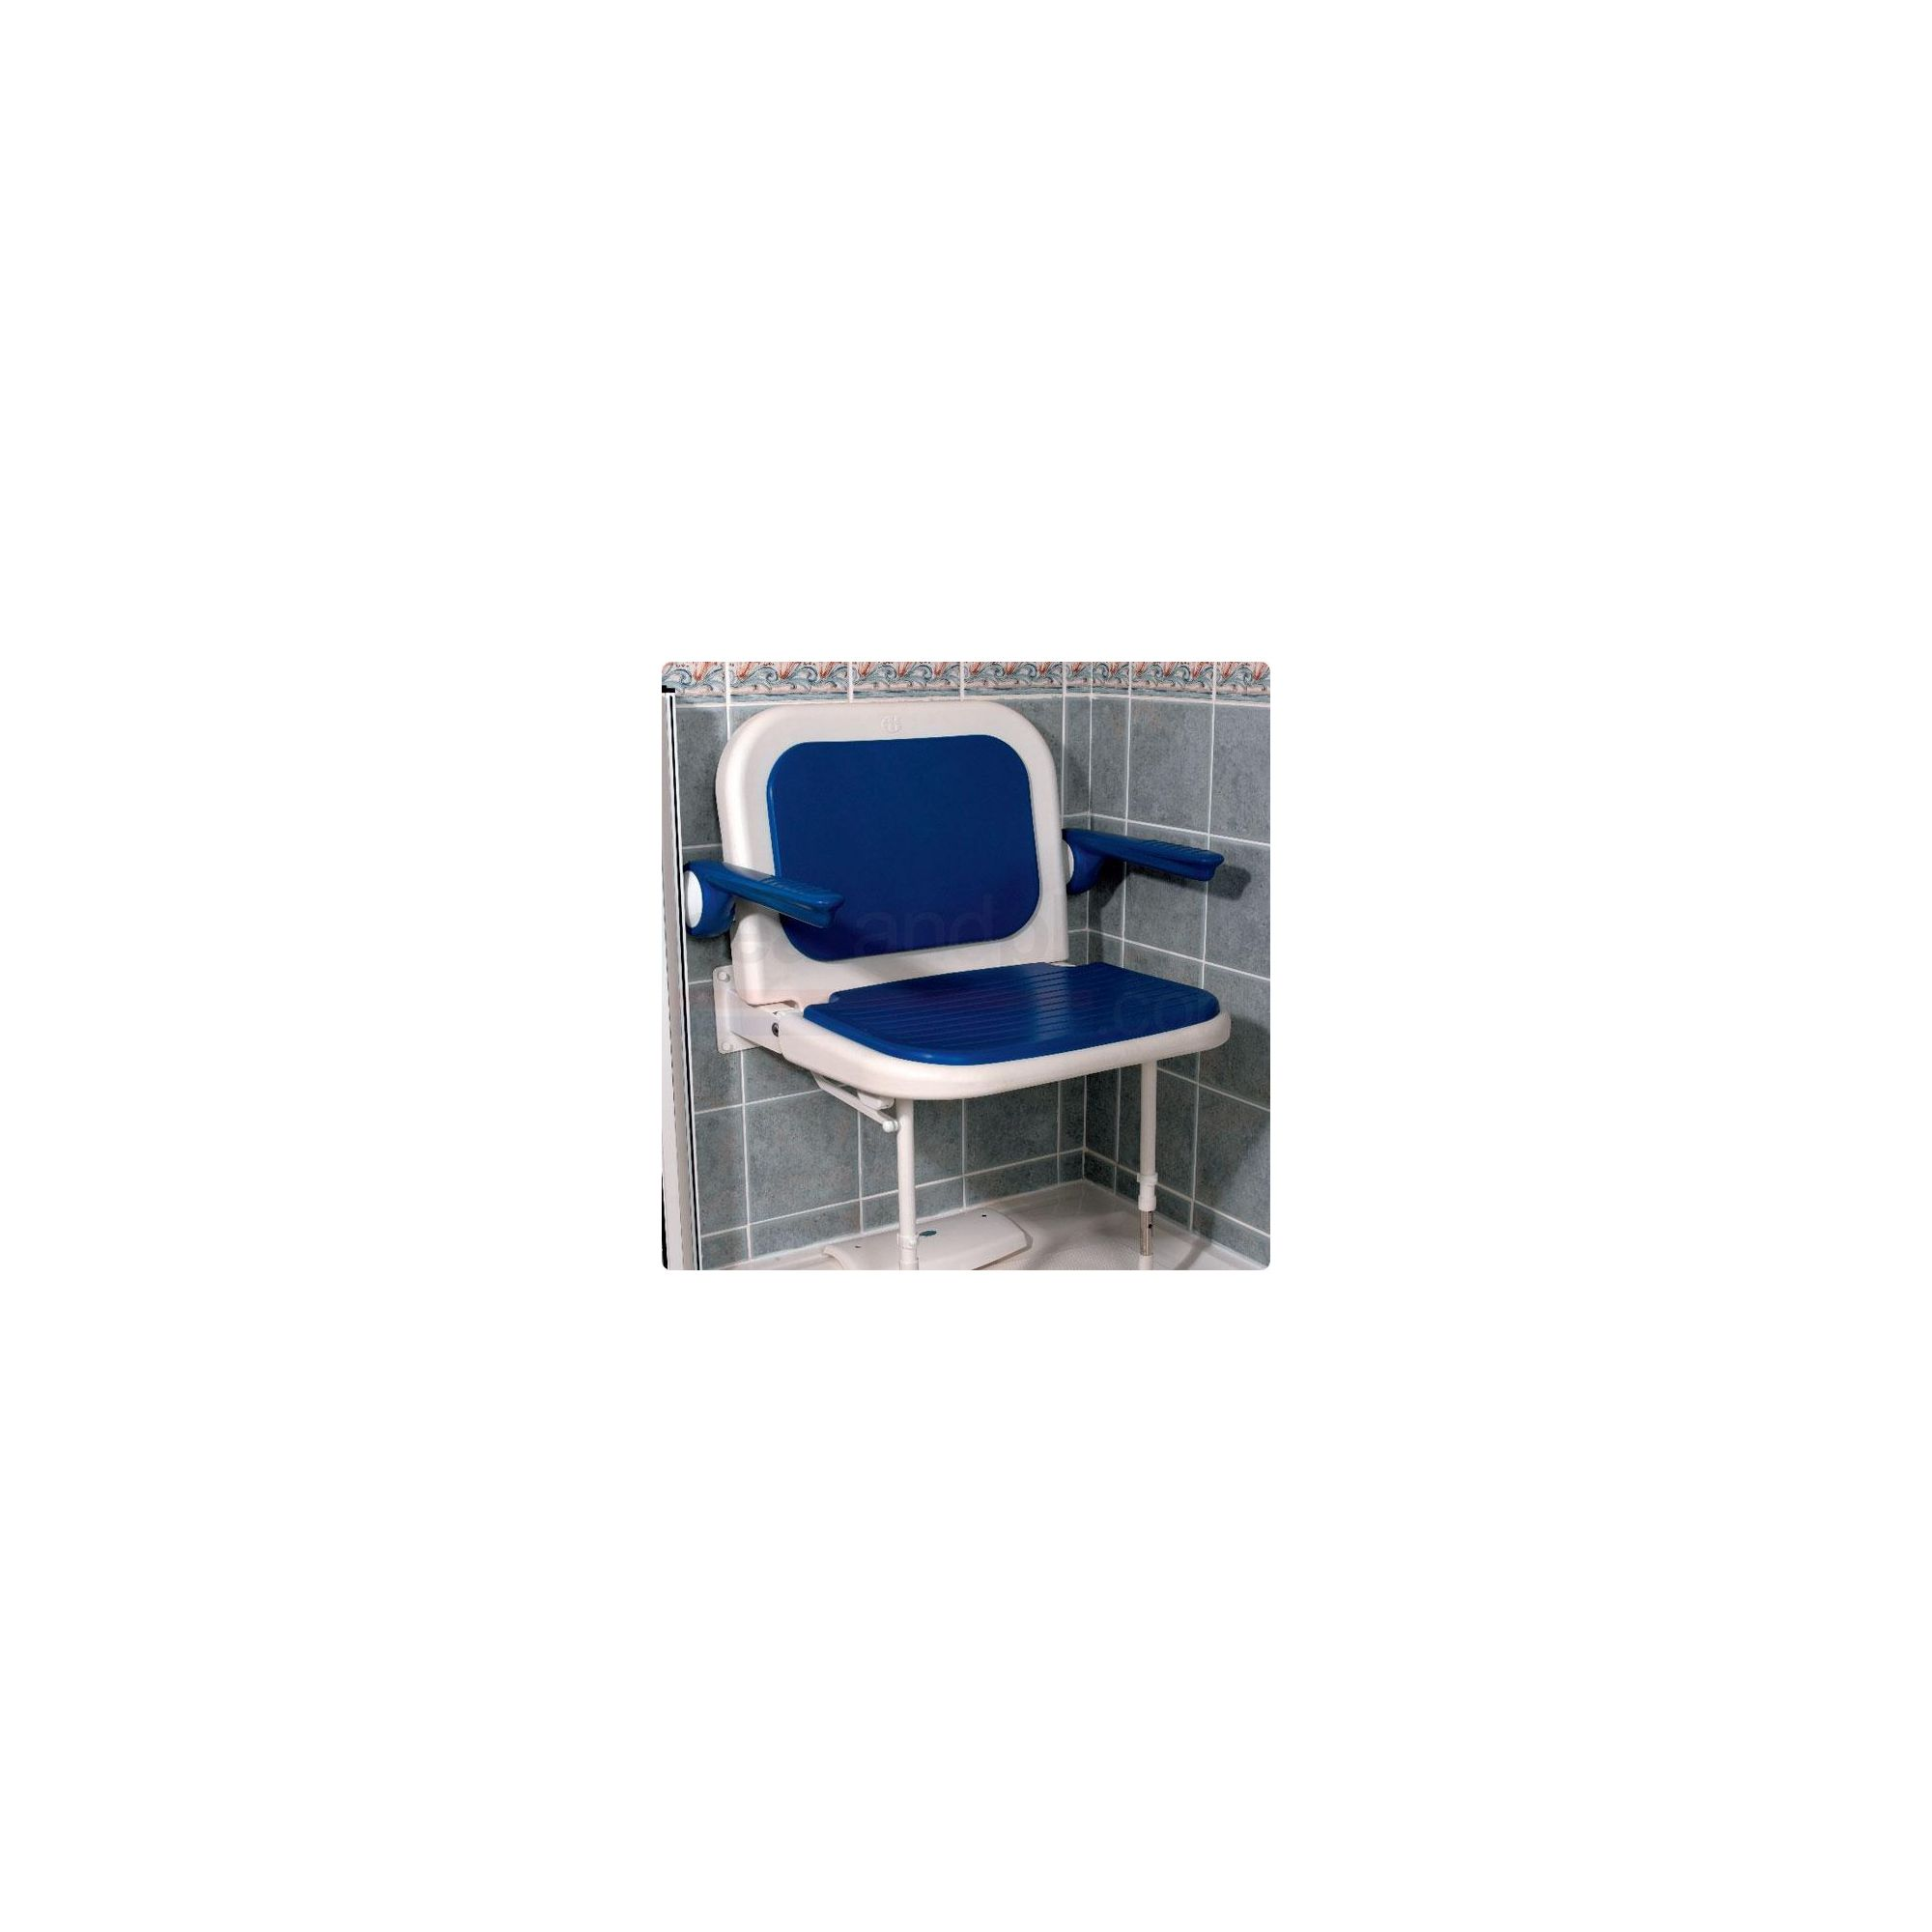 AKW 4000 Series Extra Wide Fold Up Shower Seat Blue with Back and Arms Blue at Tesco Direct